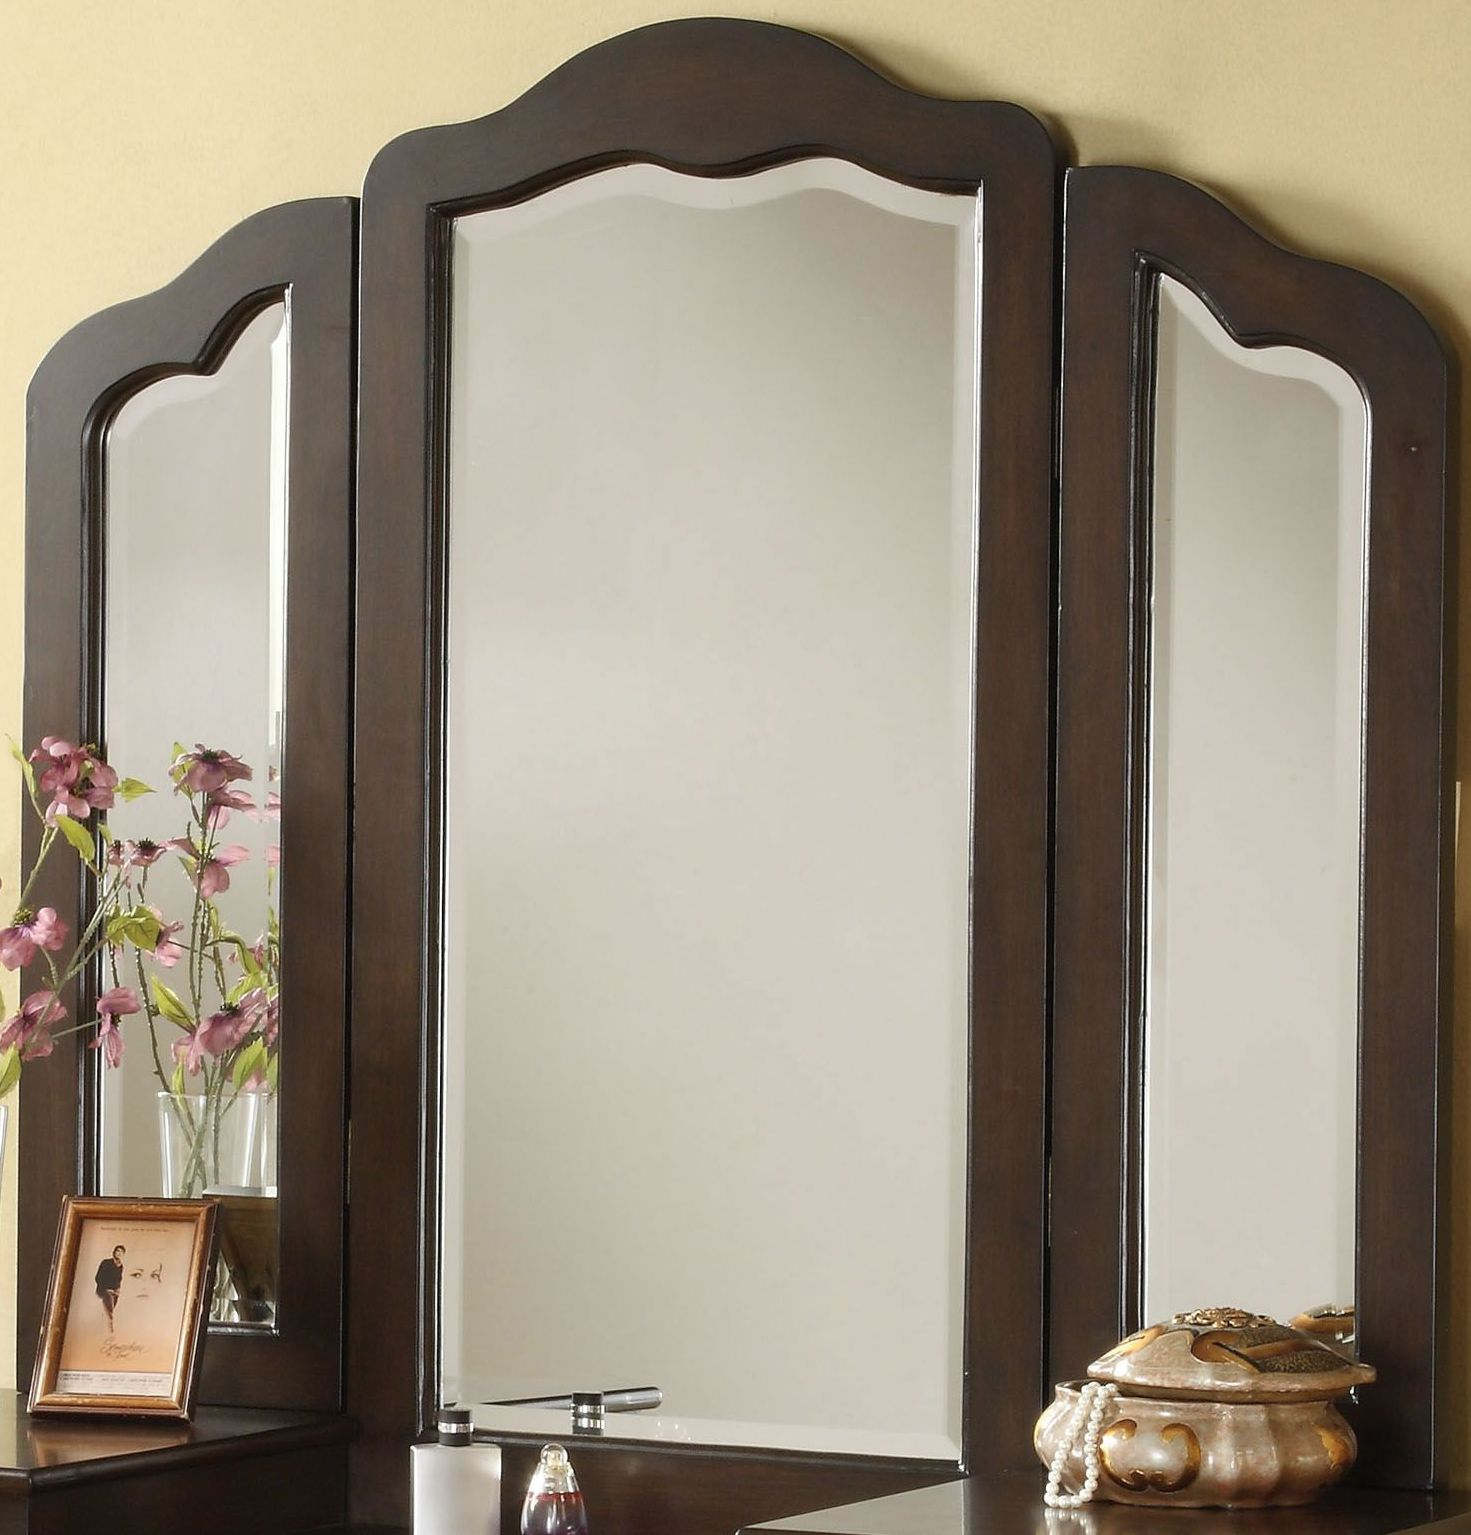 Annapolis Collection 6 Acme Annapolis Brown Vanity Mirror - Annapolis Collection